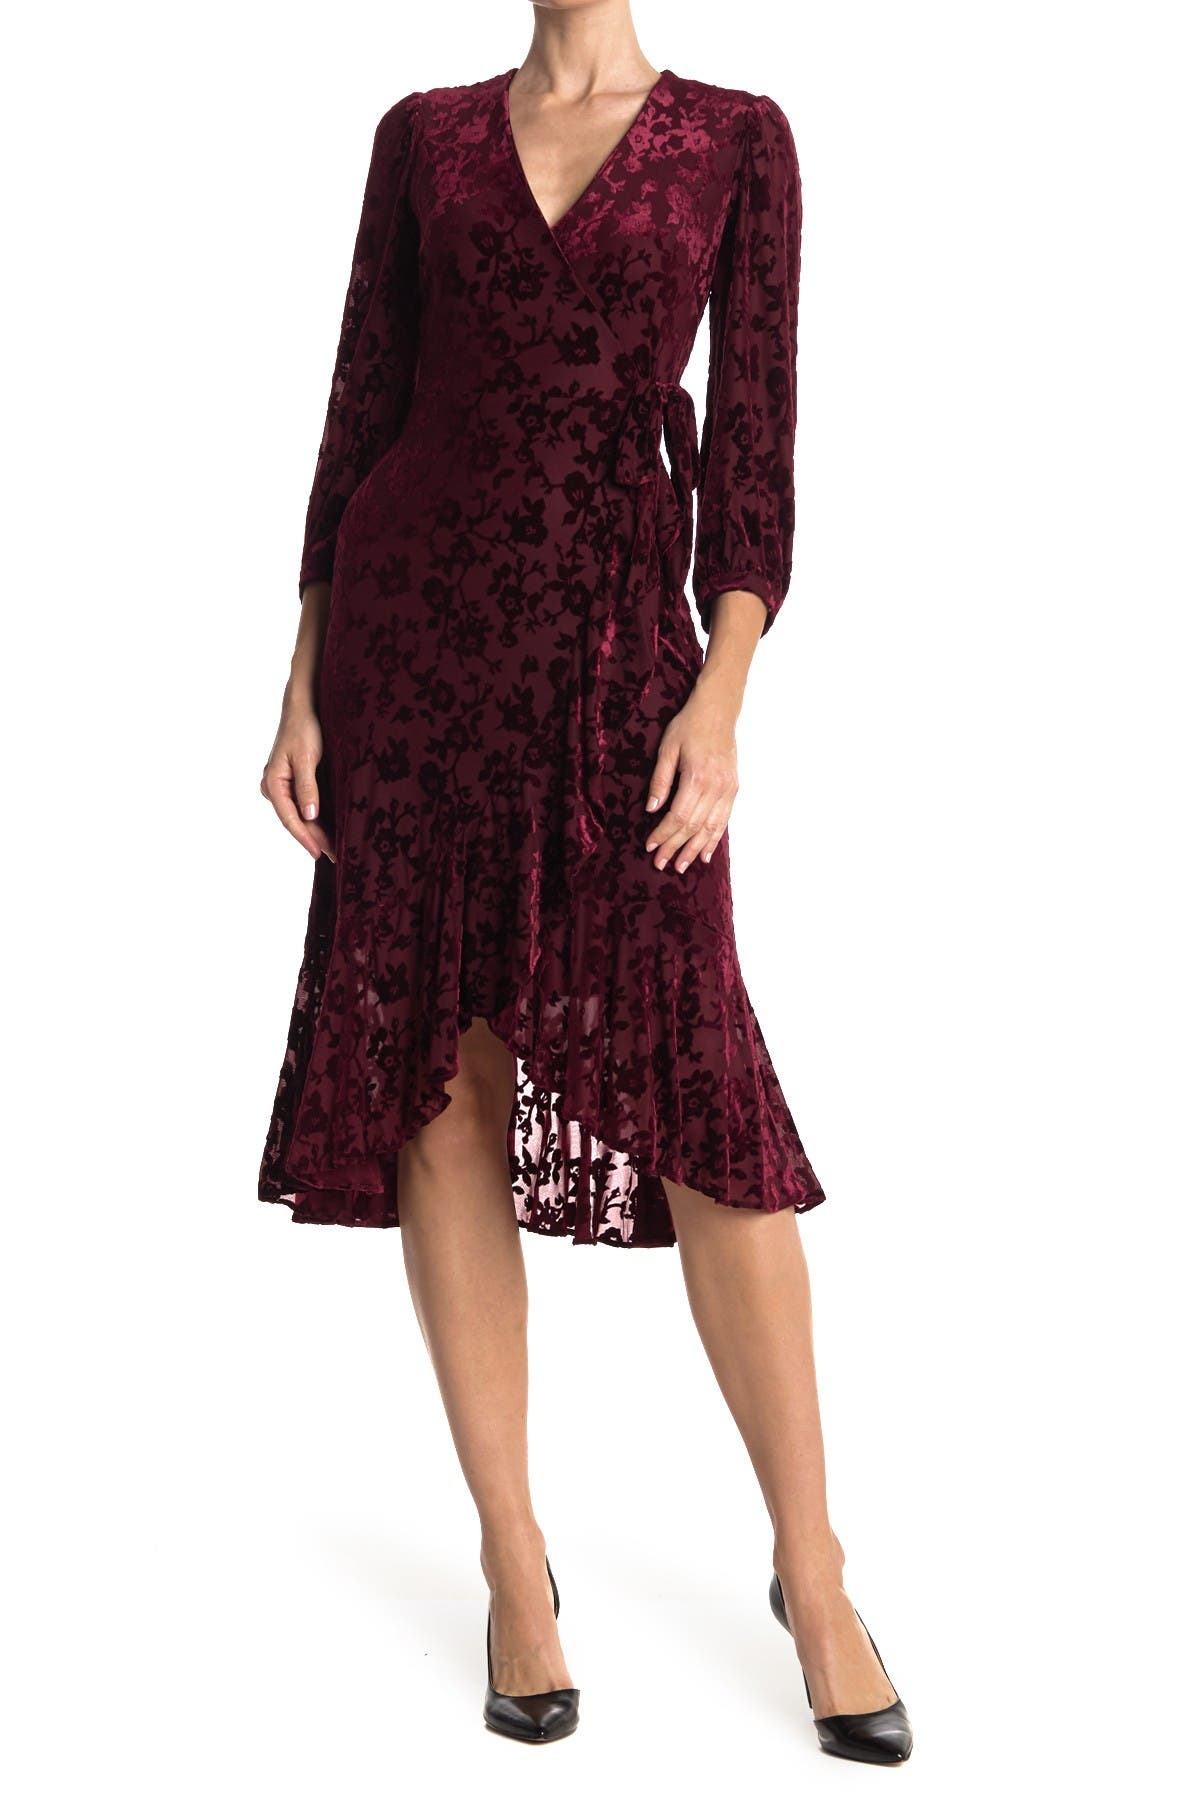 Image of Calvin Klein Velvet Burnout Floral Midi Flutter Wrap Front Dress